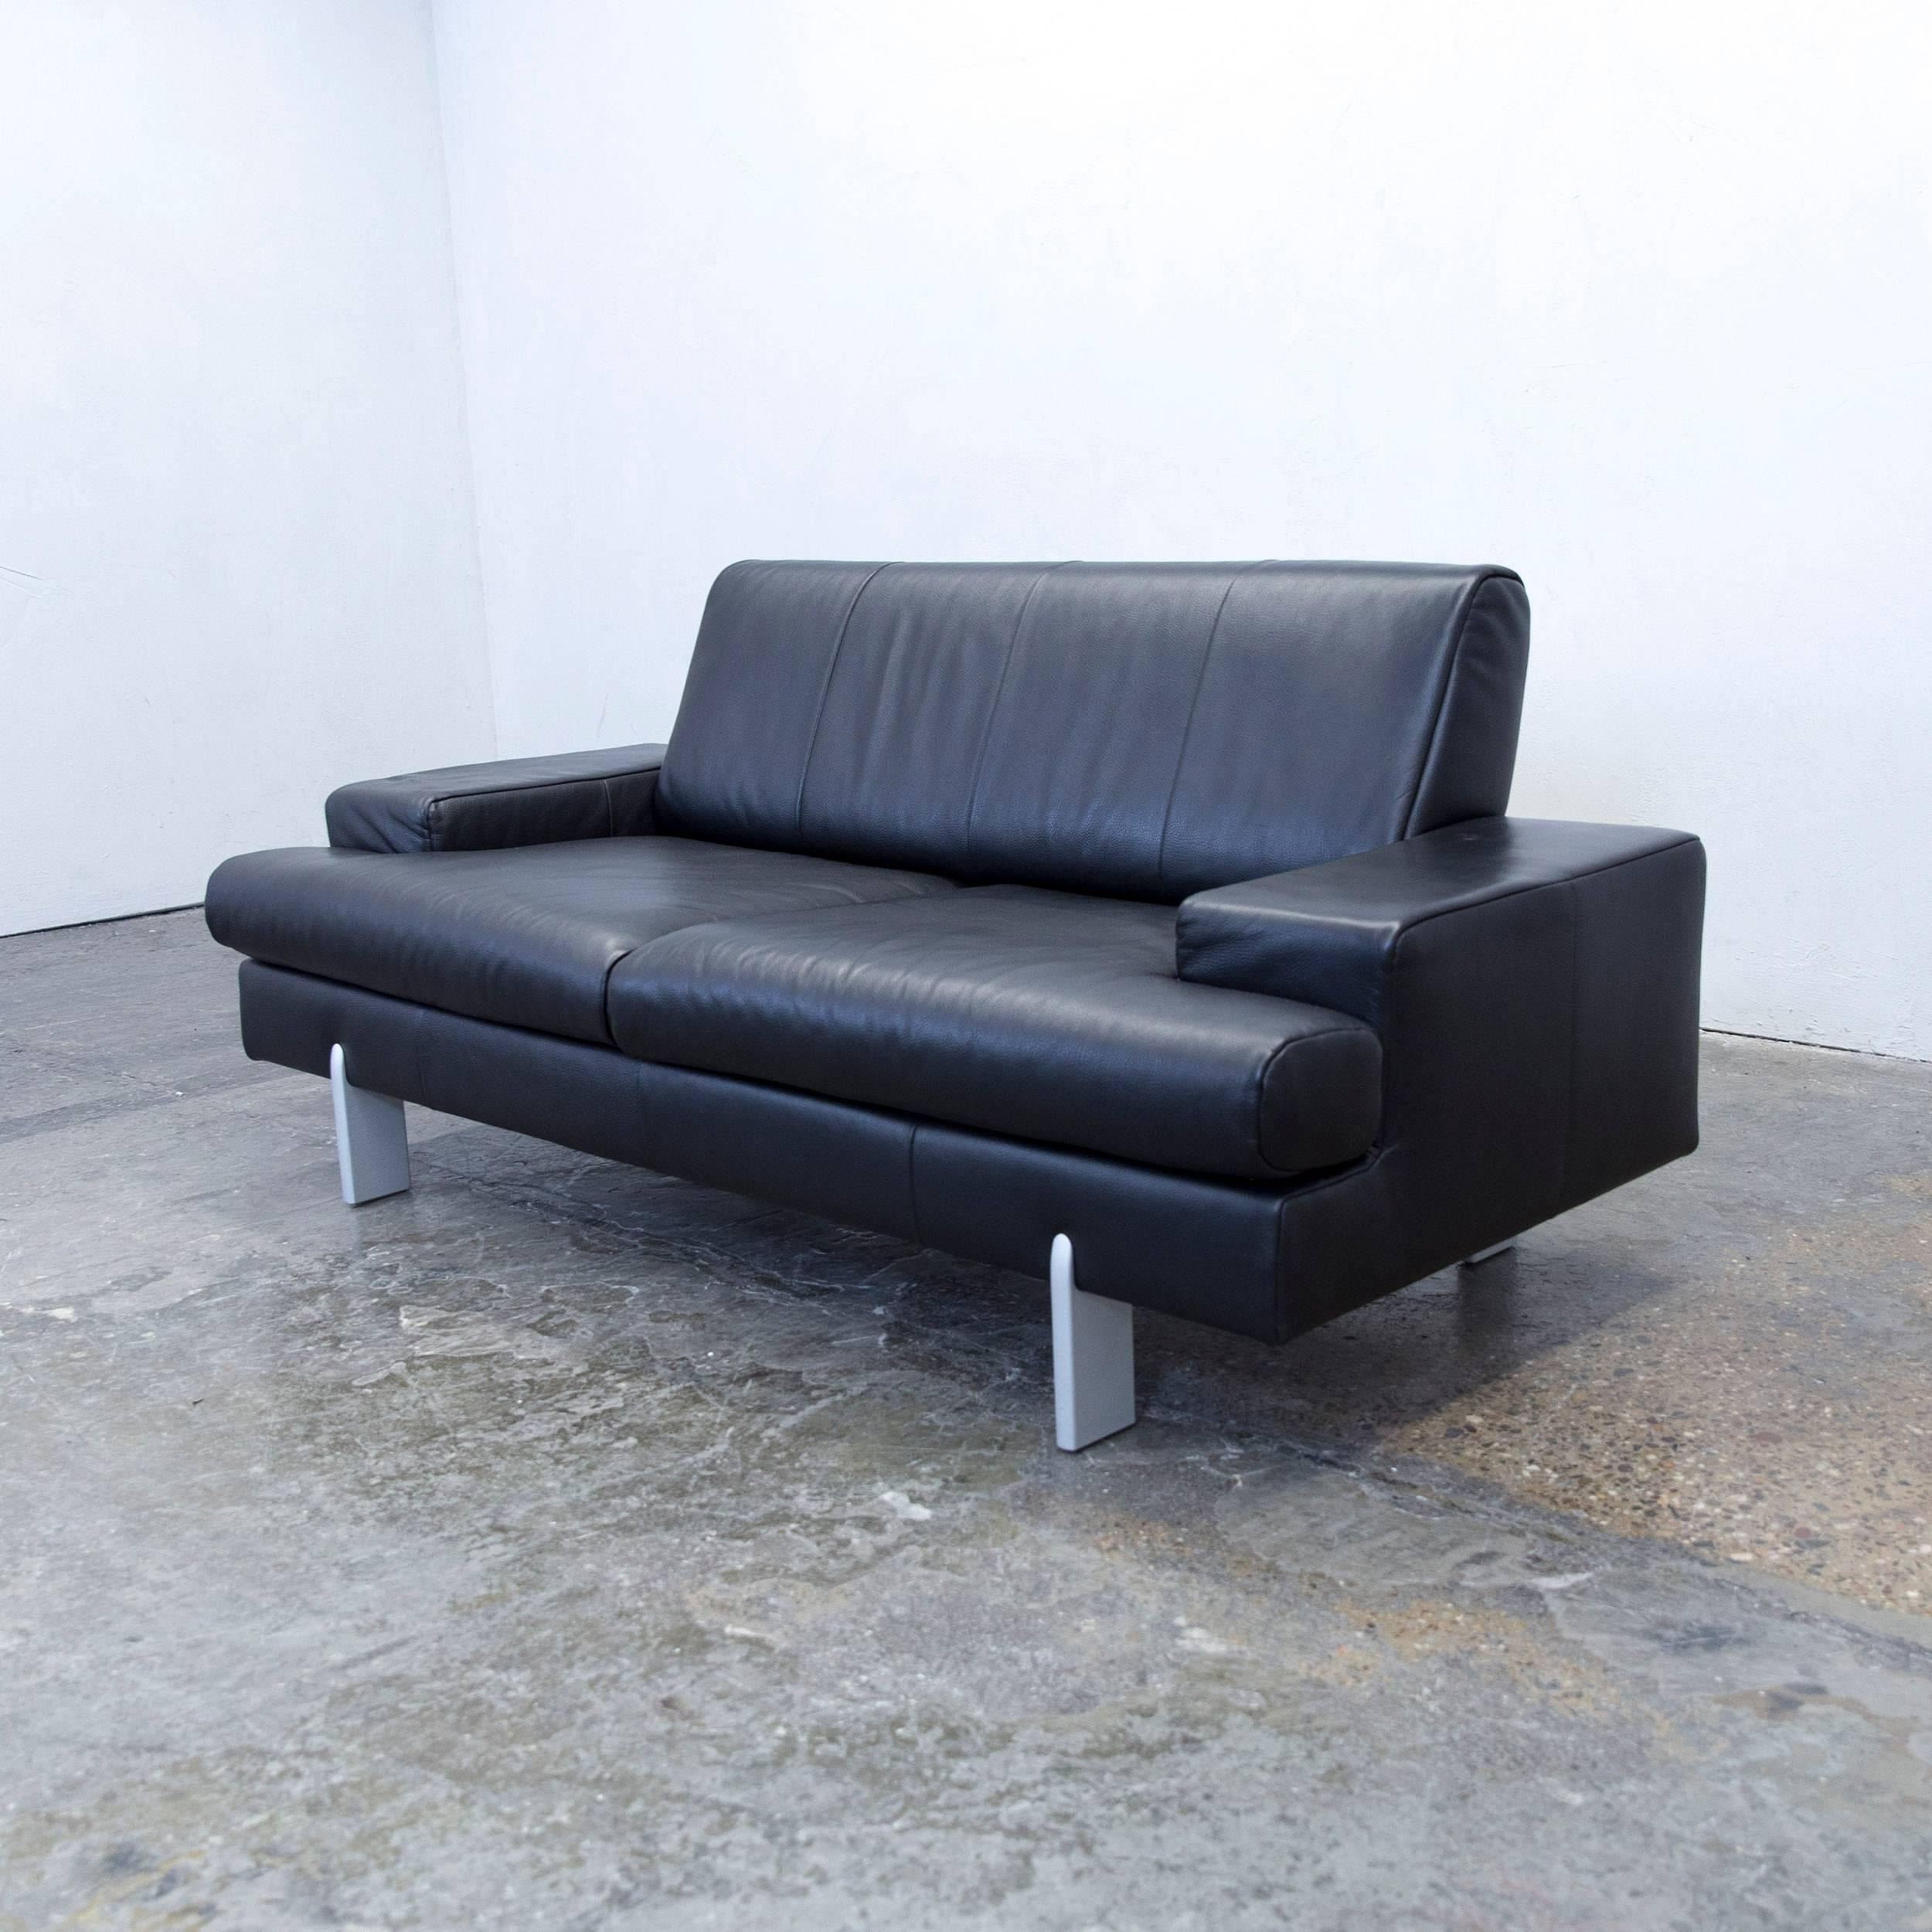 Sofa Leder Elegant Sofa Leder With Sofa Leder Affordable Fabulous